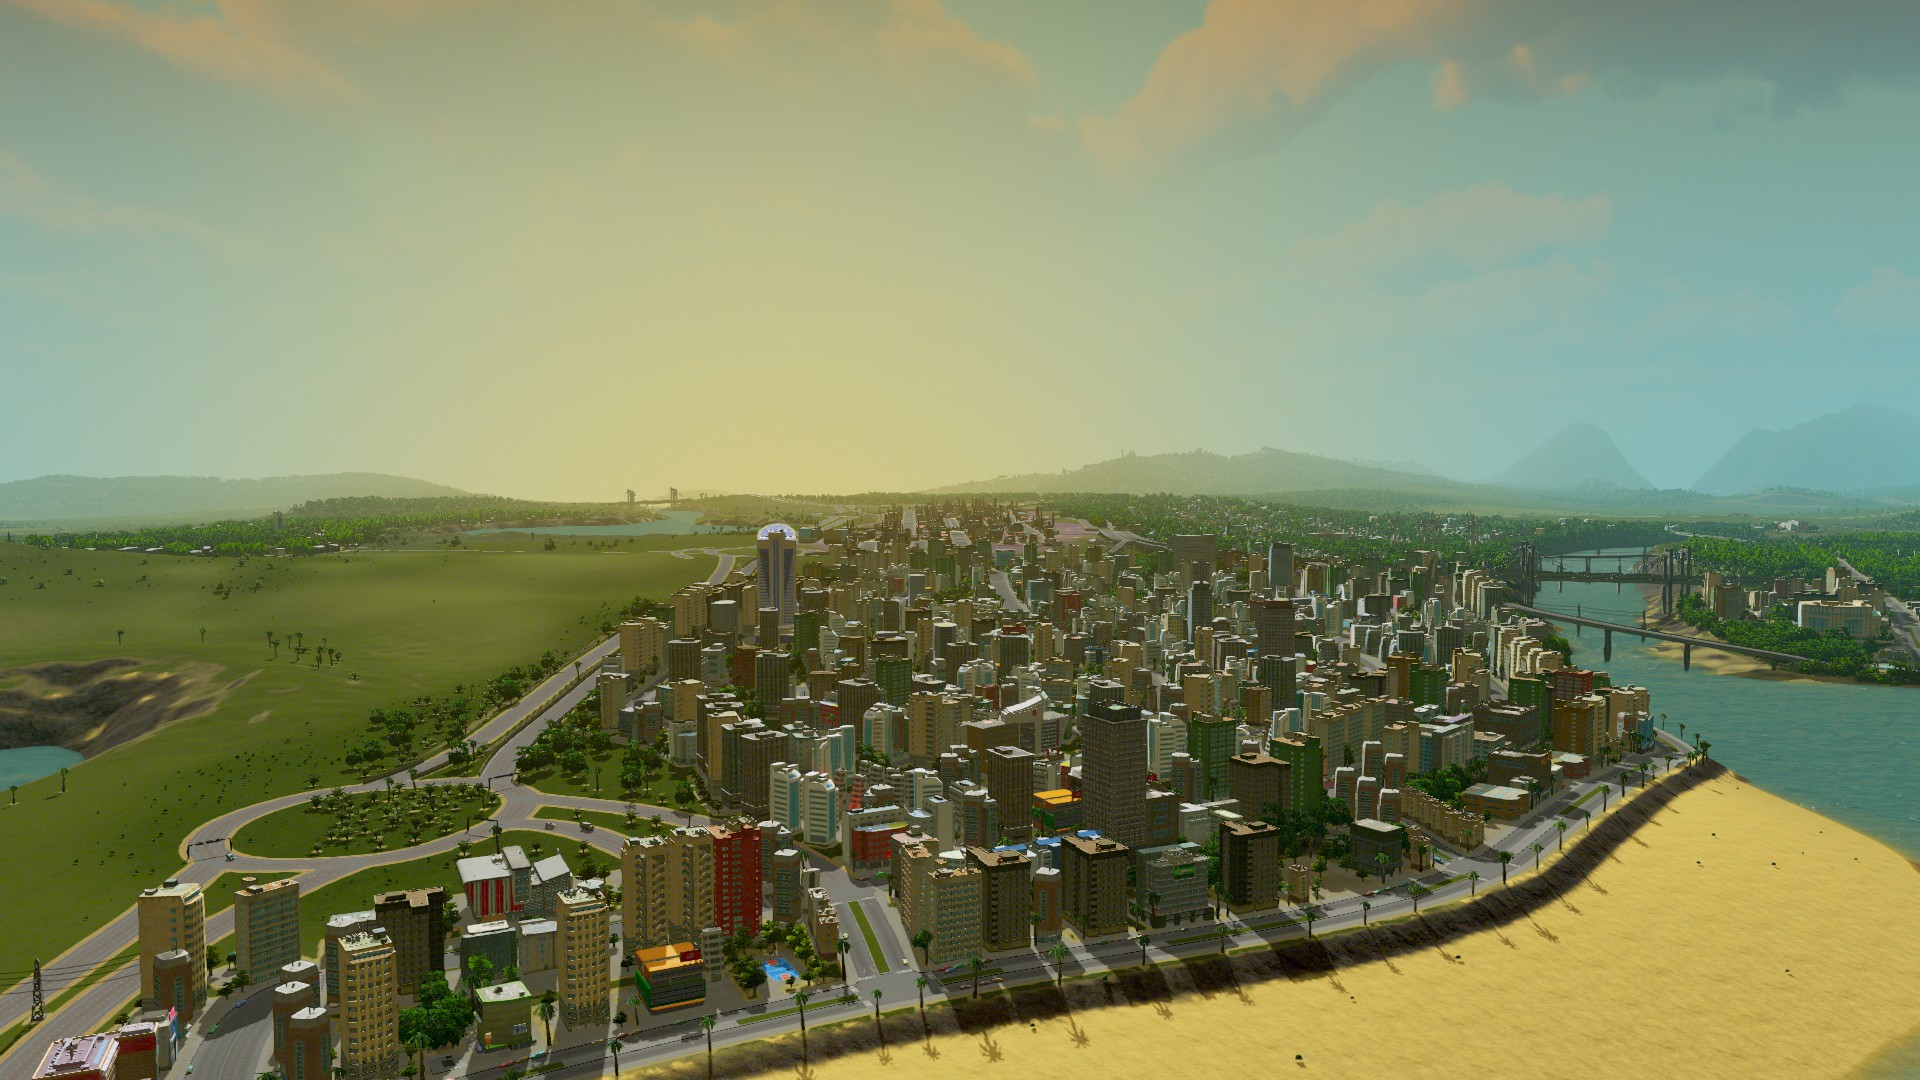 download cities skylines deluxe edition cracked by codex include all dlc and latest update mirrorace multiup